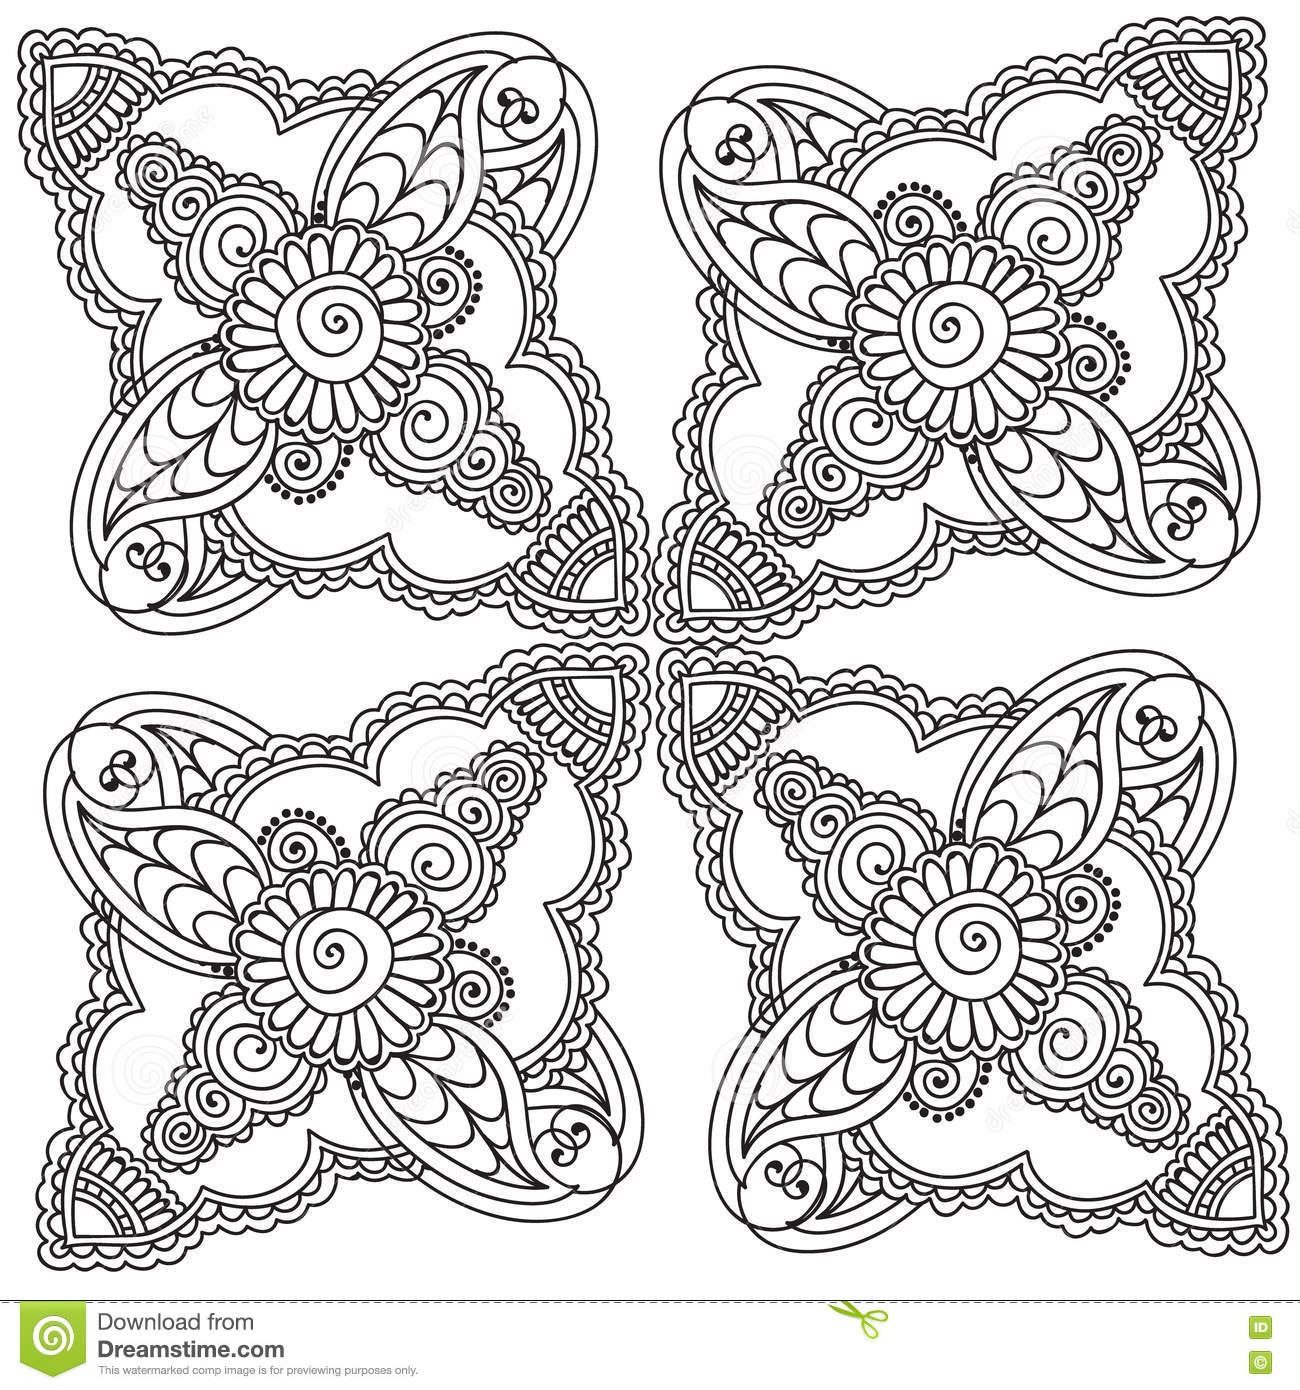 Coloring pages for adults abstract flowers - Coloring Pages For Adults Henna Mehndi Doodles Abstract Floral Elements